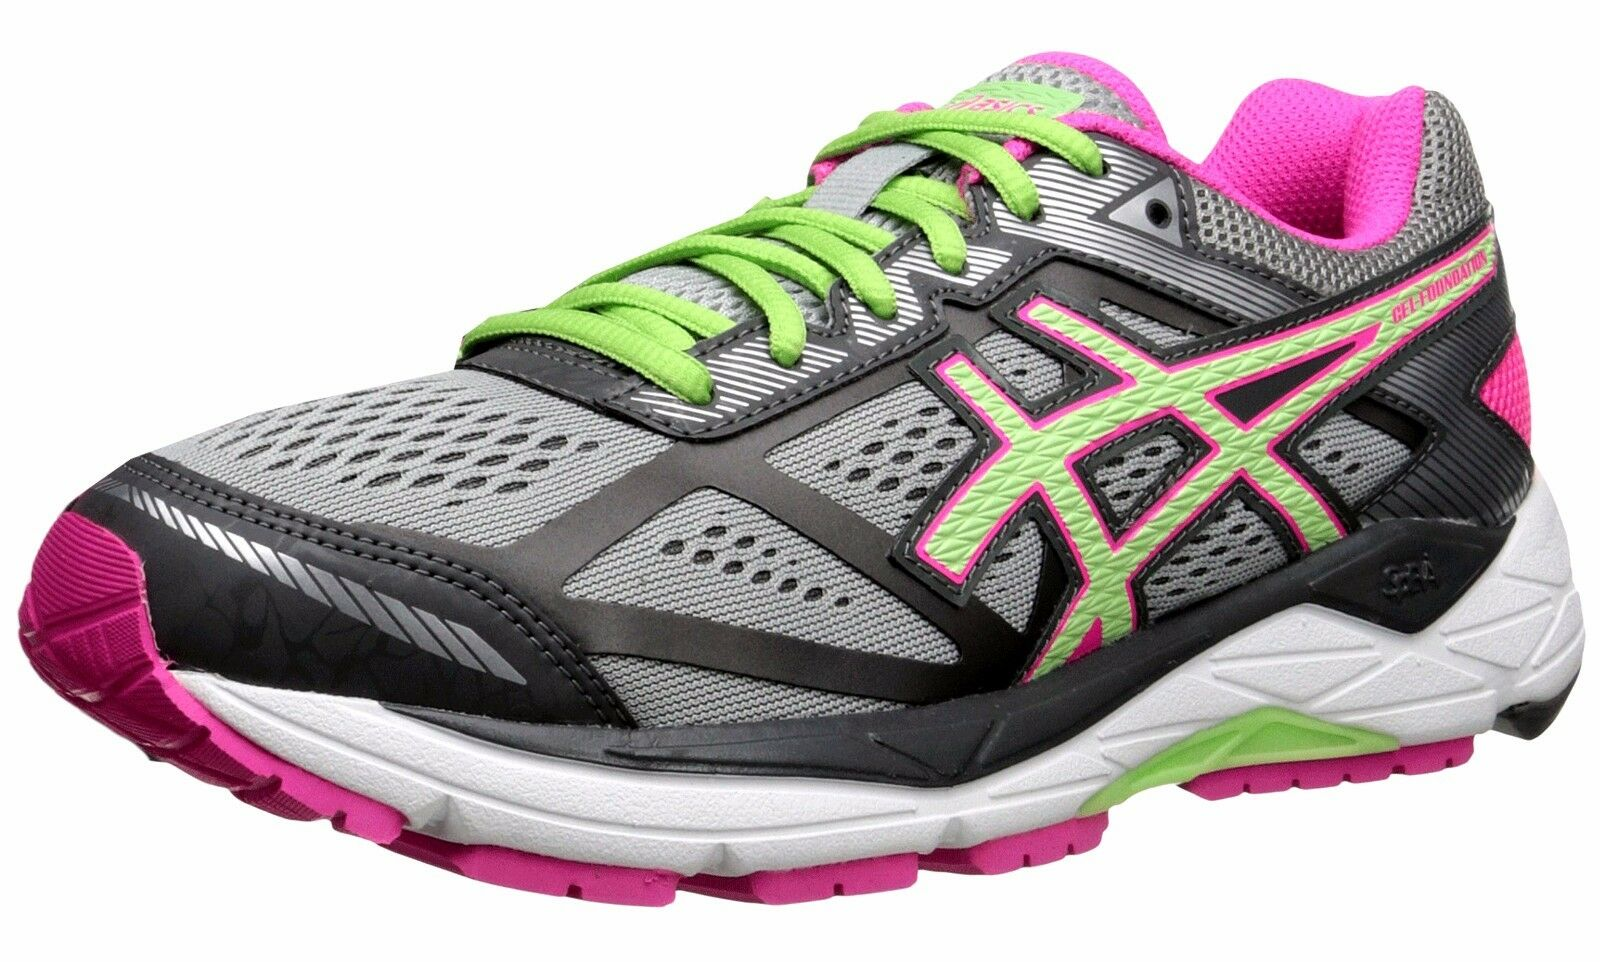 ASICS  WOMENS GEL FOUNDATION 12 (D) WIDTH RUNNING SHOES  the classic style